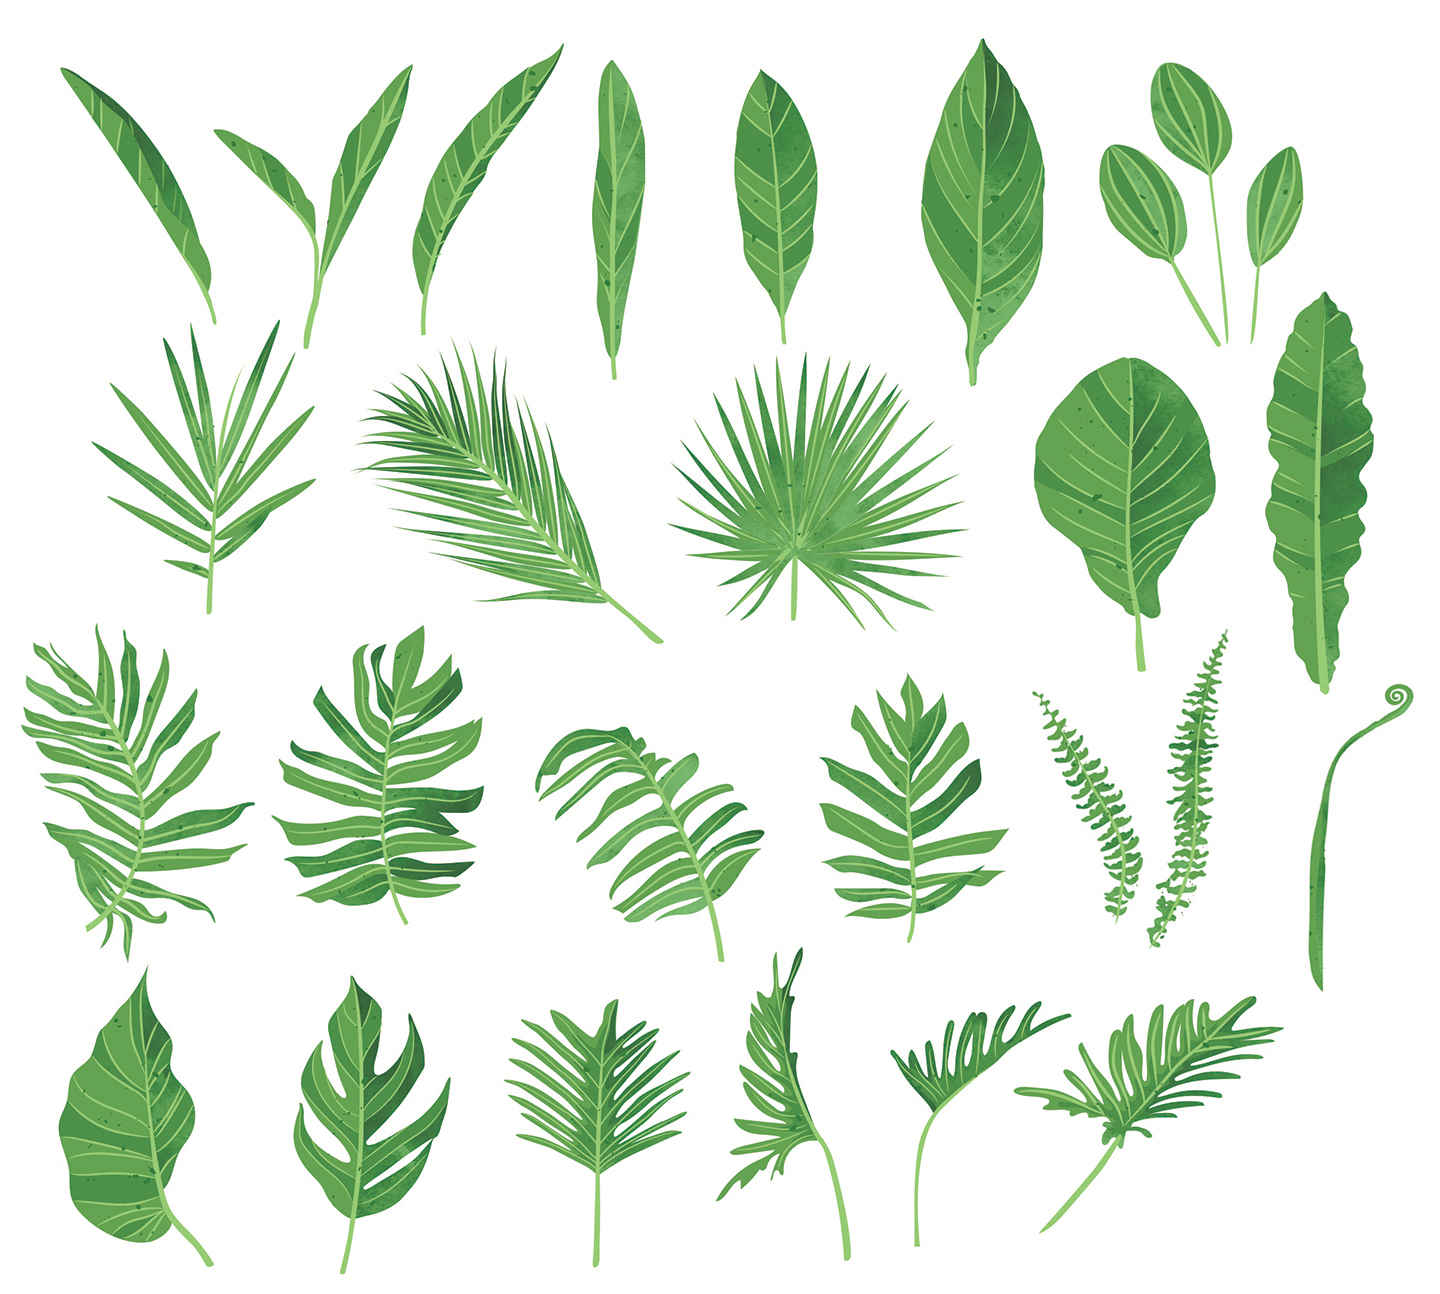 Green Watercolour Leaf/Leaves Vector